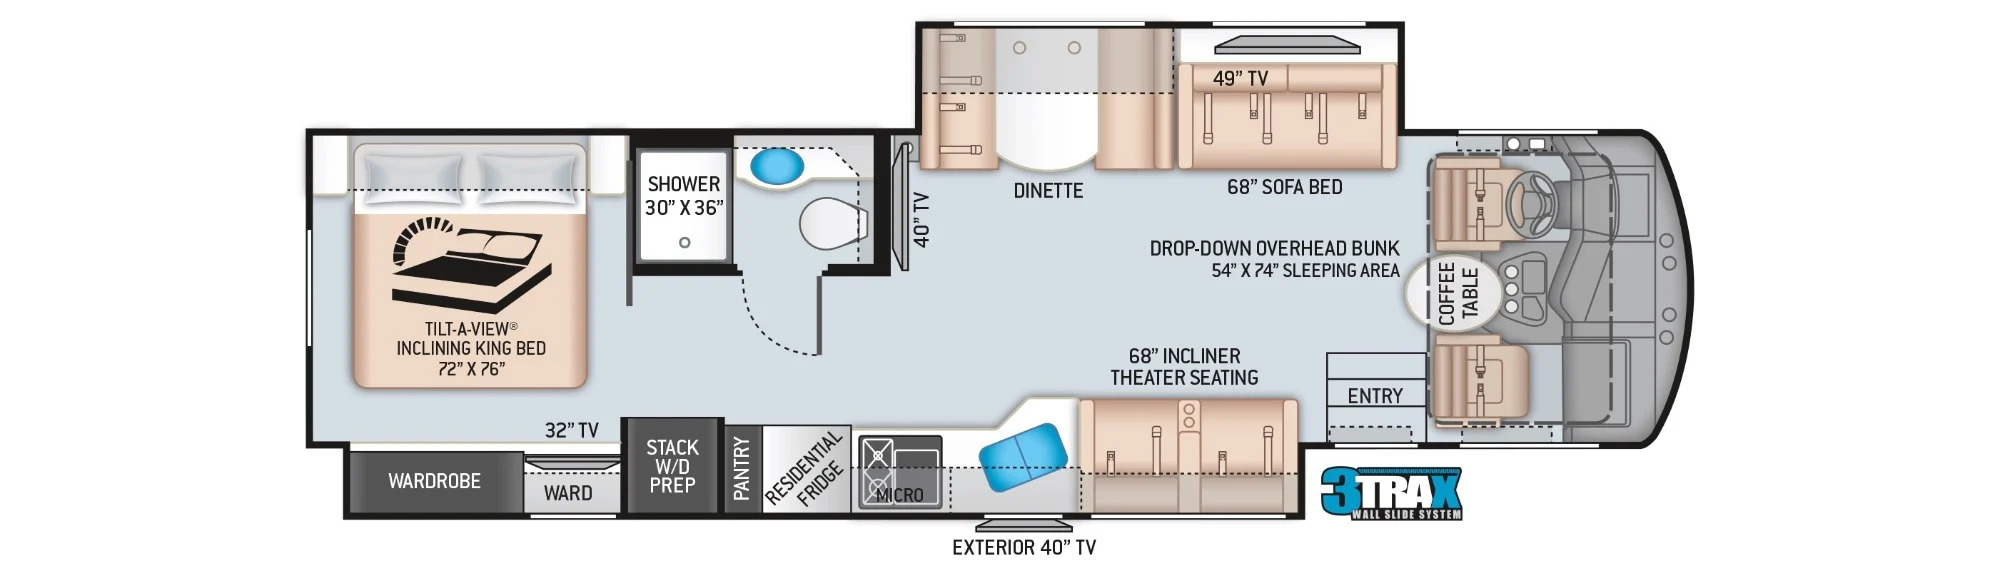 View Floor Plan for 2022 THOR CHALLENGER 35MQ